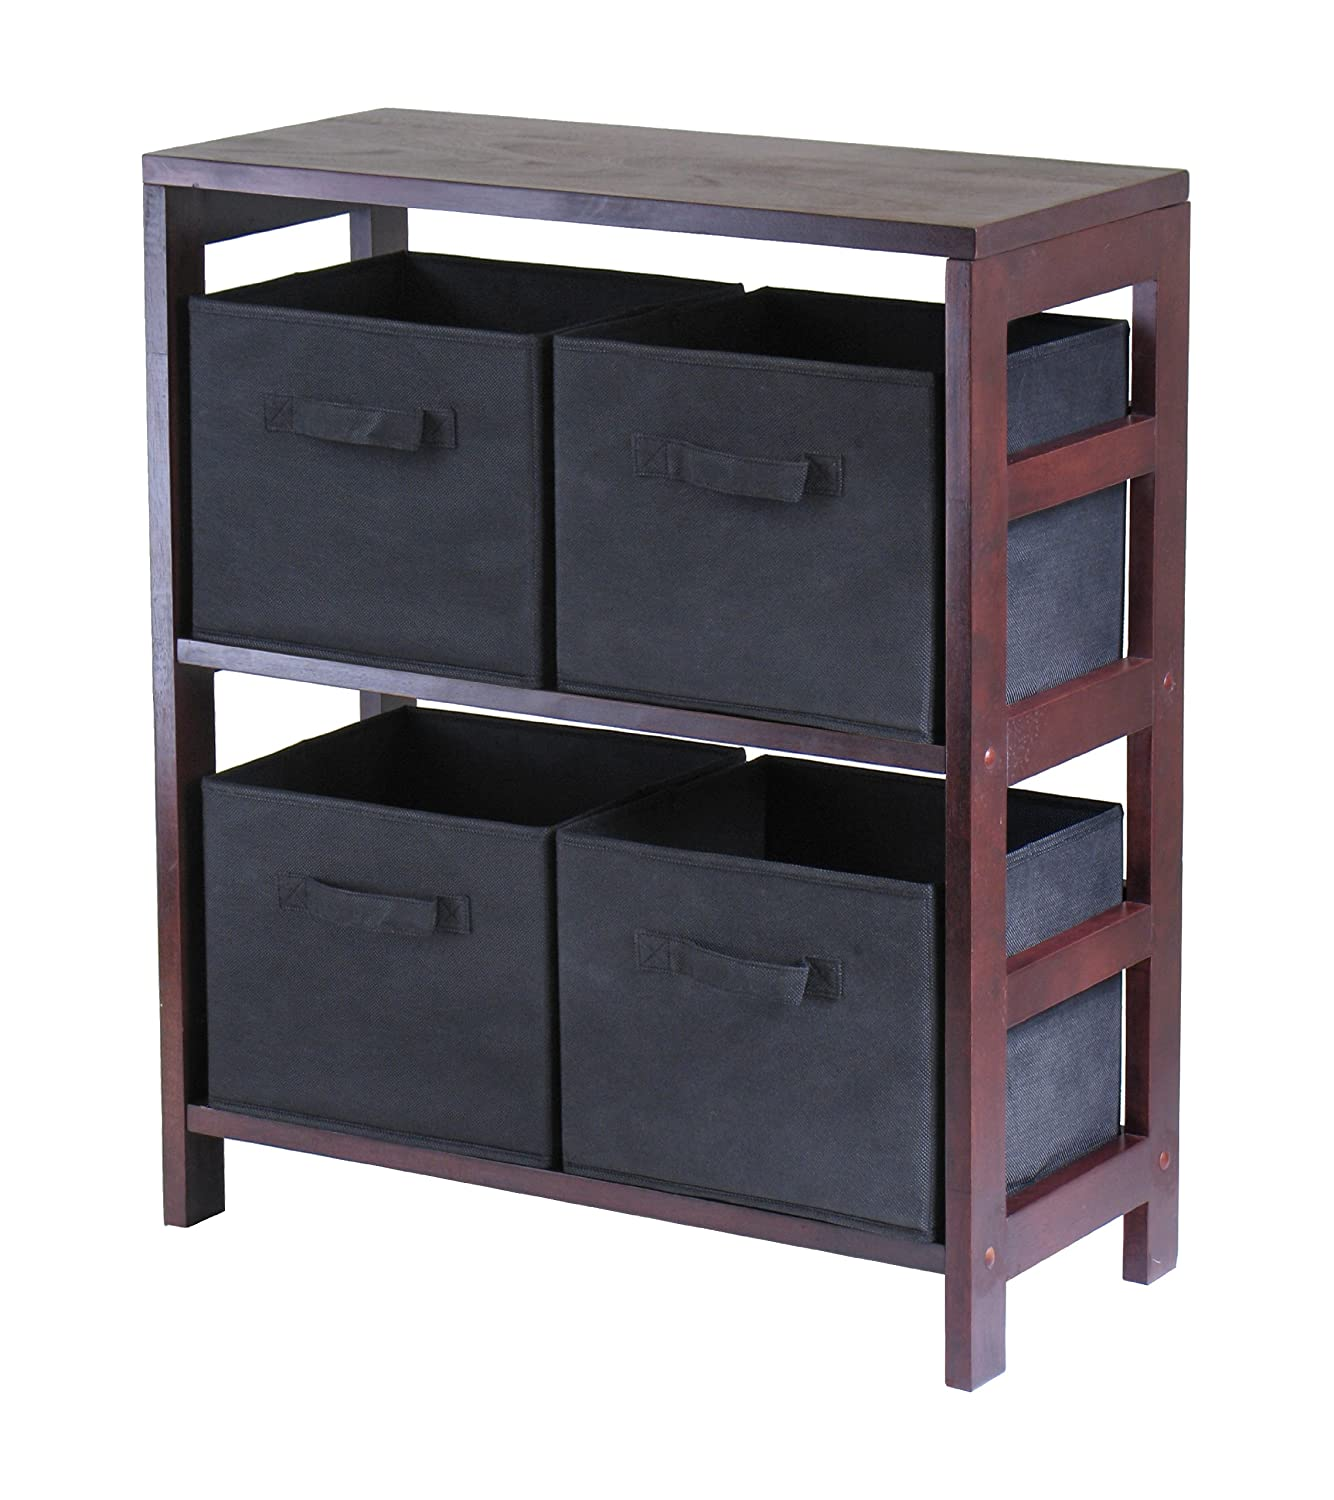 Winsome Wood Leo Wood 3 Tier Shelf with 3 Rattan Baskets - 1 Large; 2 Small in Espresso Finish 92649 WN-2-92649